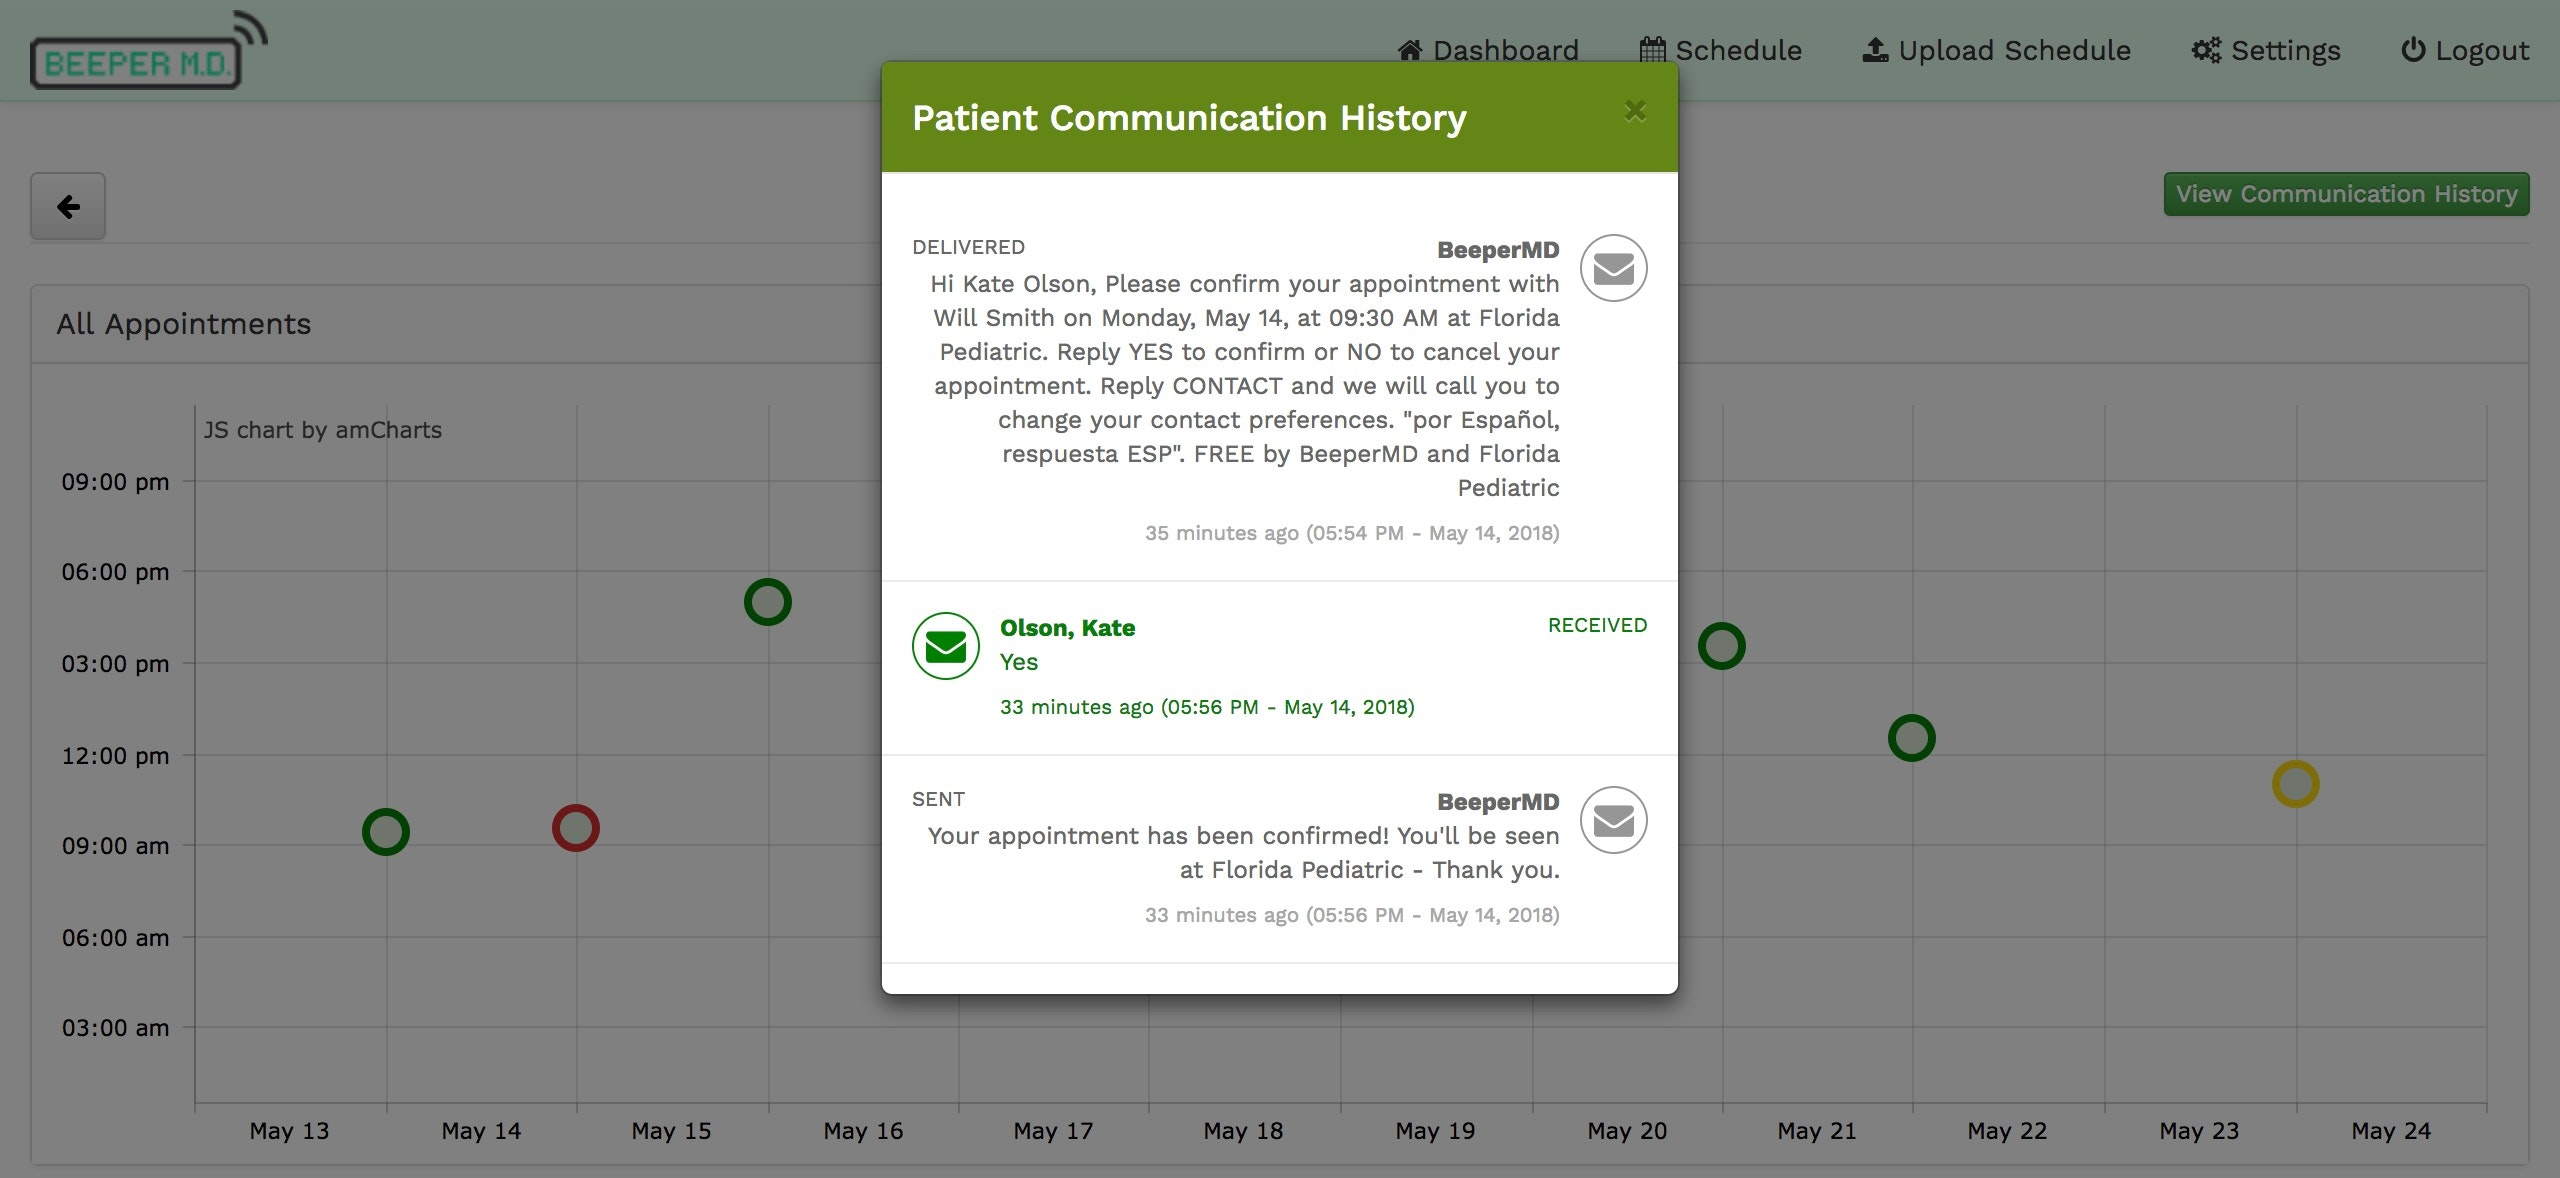 Patient communication